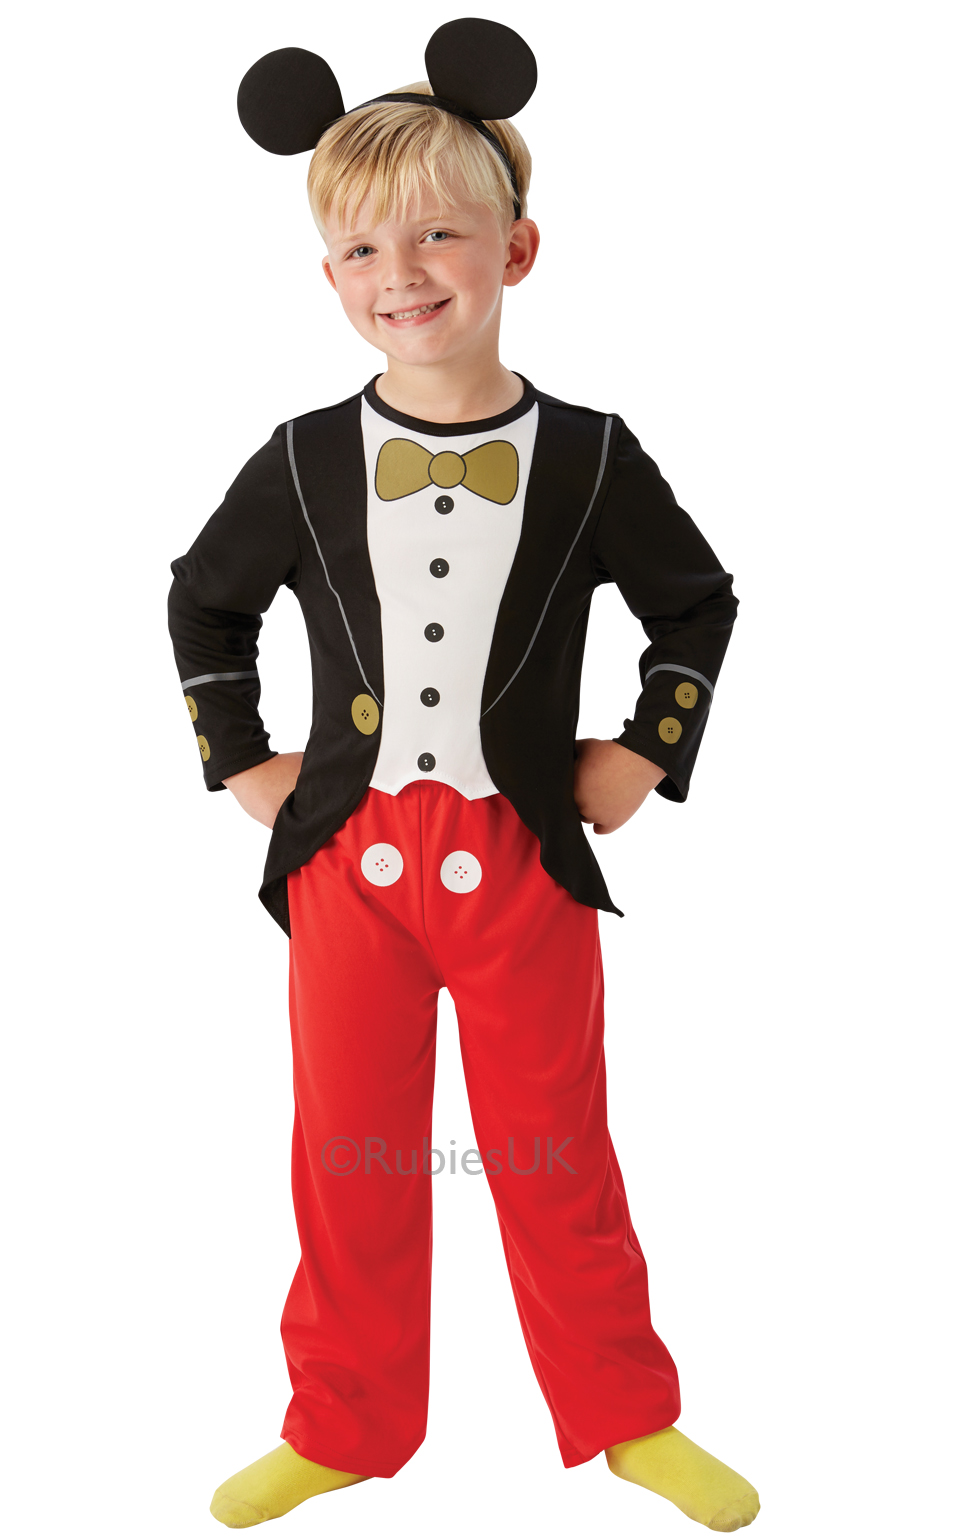 677b9bd43bc Child Mickey Mouse Costume Fancy Dress Costumes   Party Supplies ...